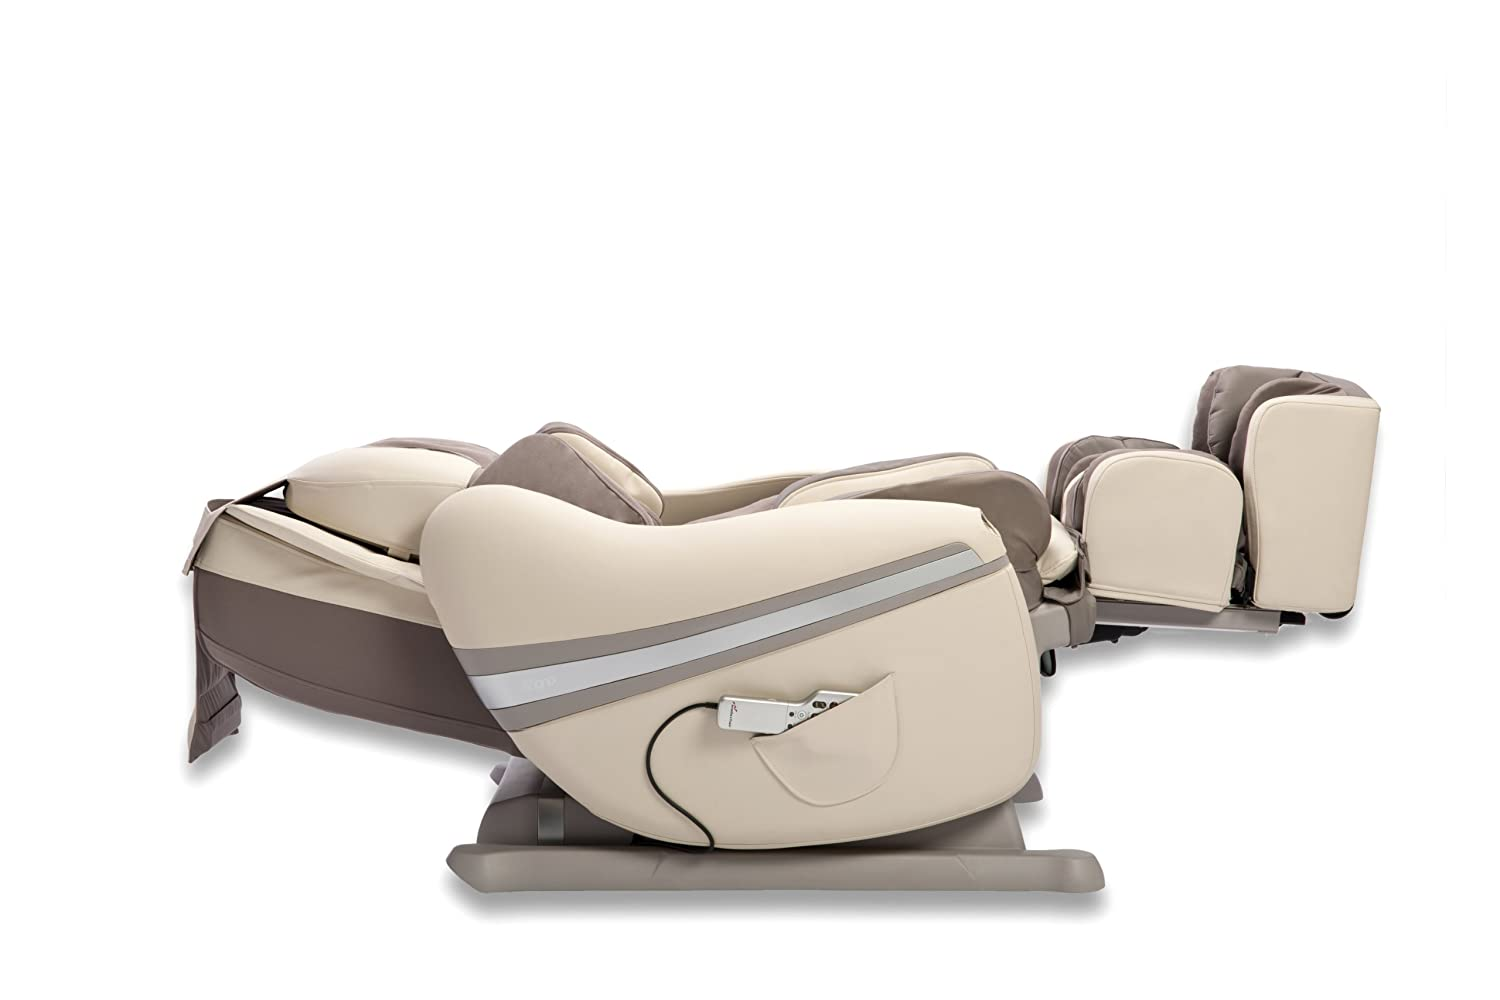 Amazoncom Inada Sogno Dreamwave Massage Chair Dark Brown Health